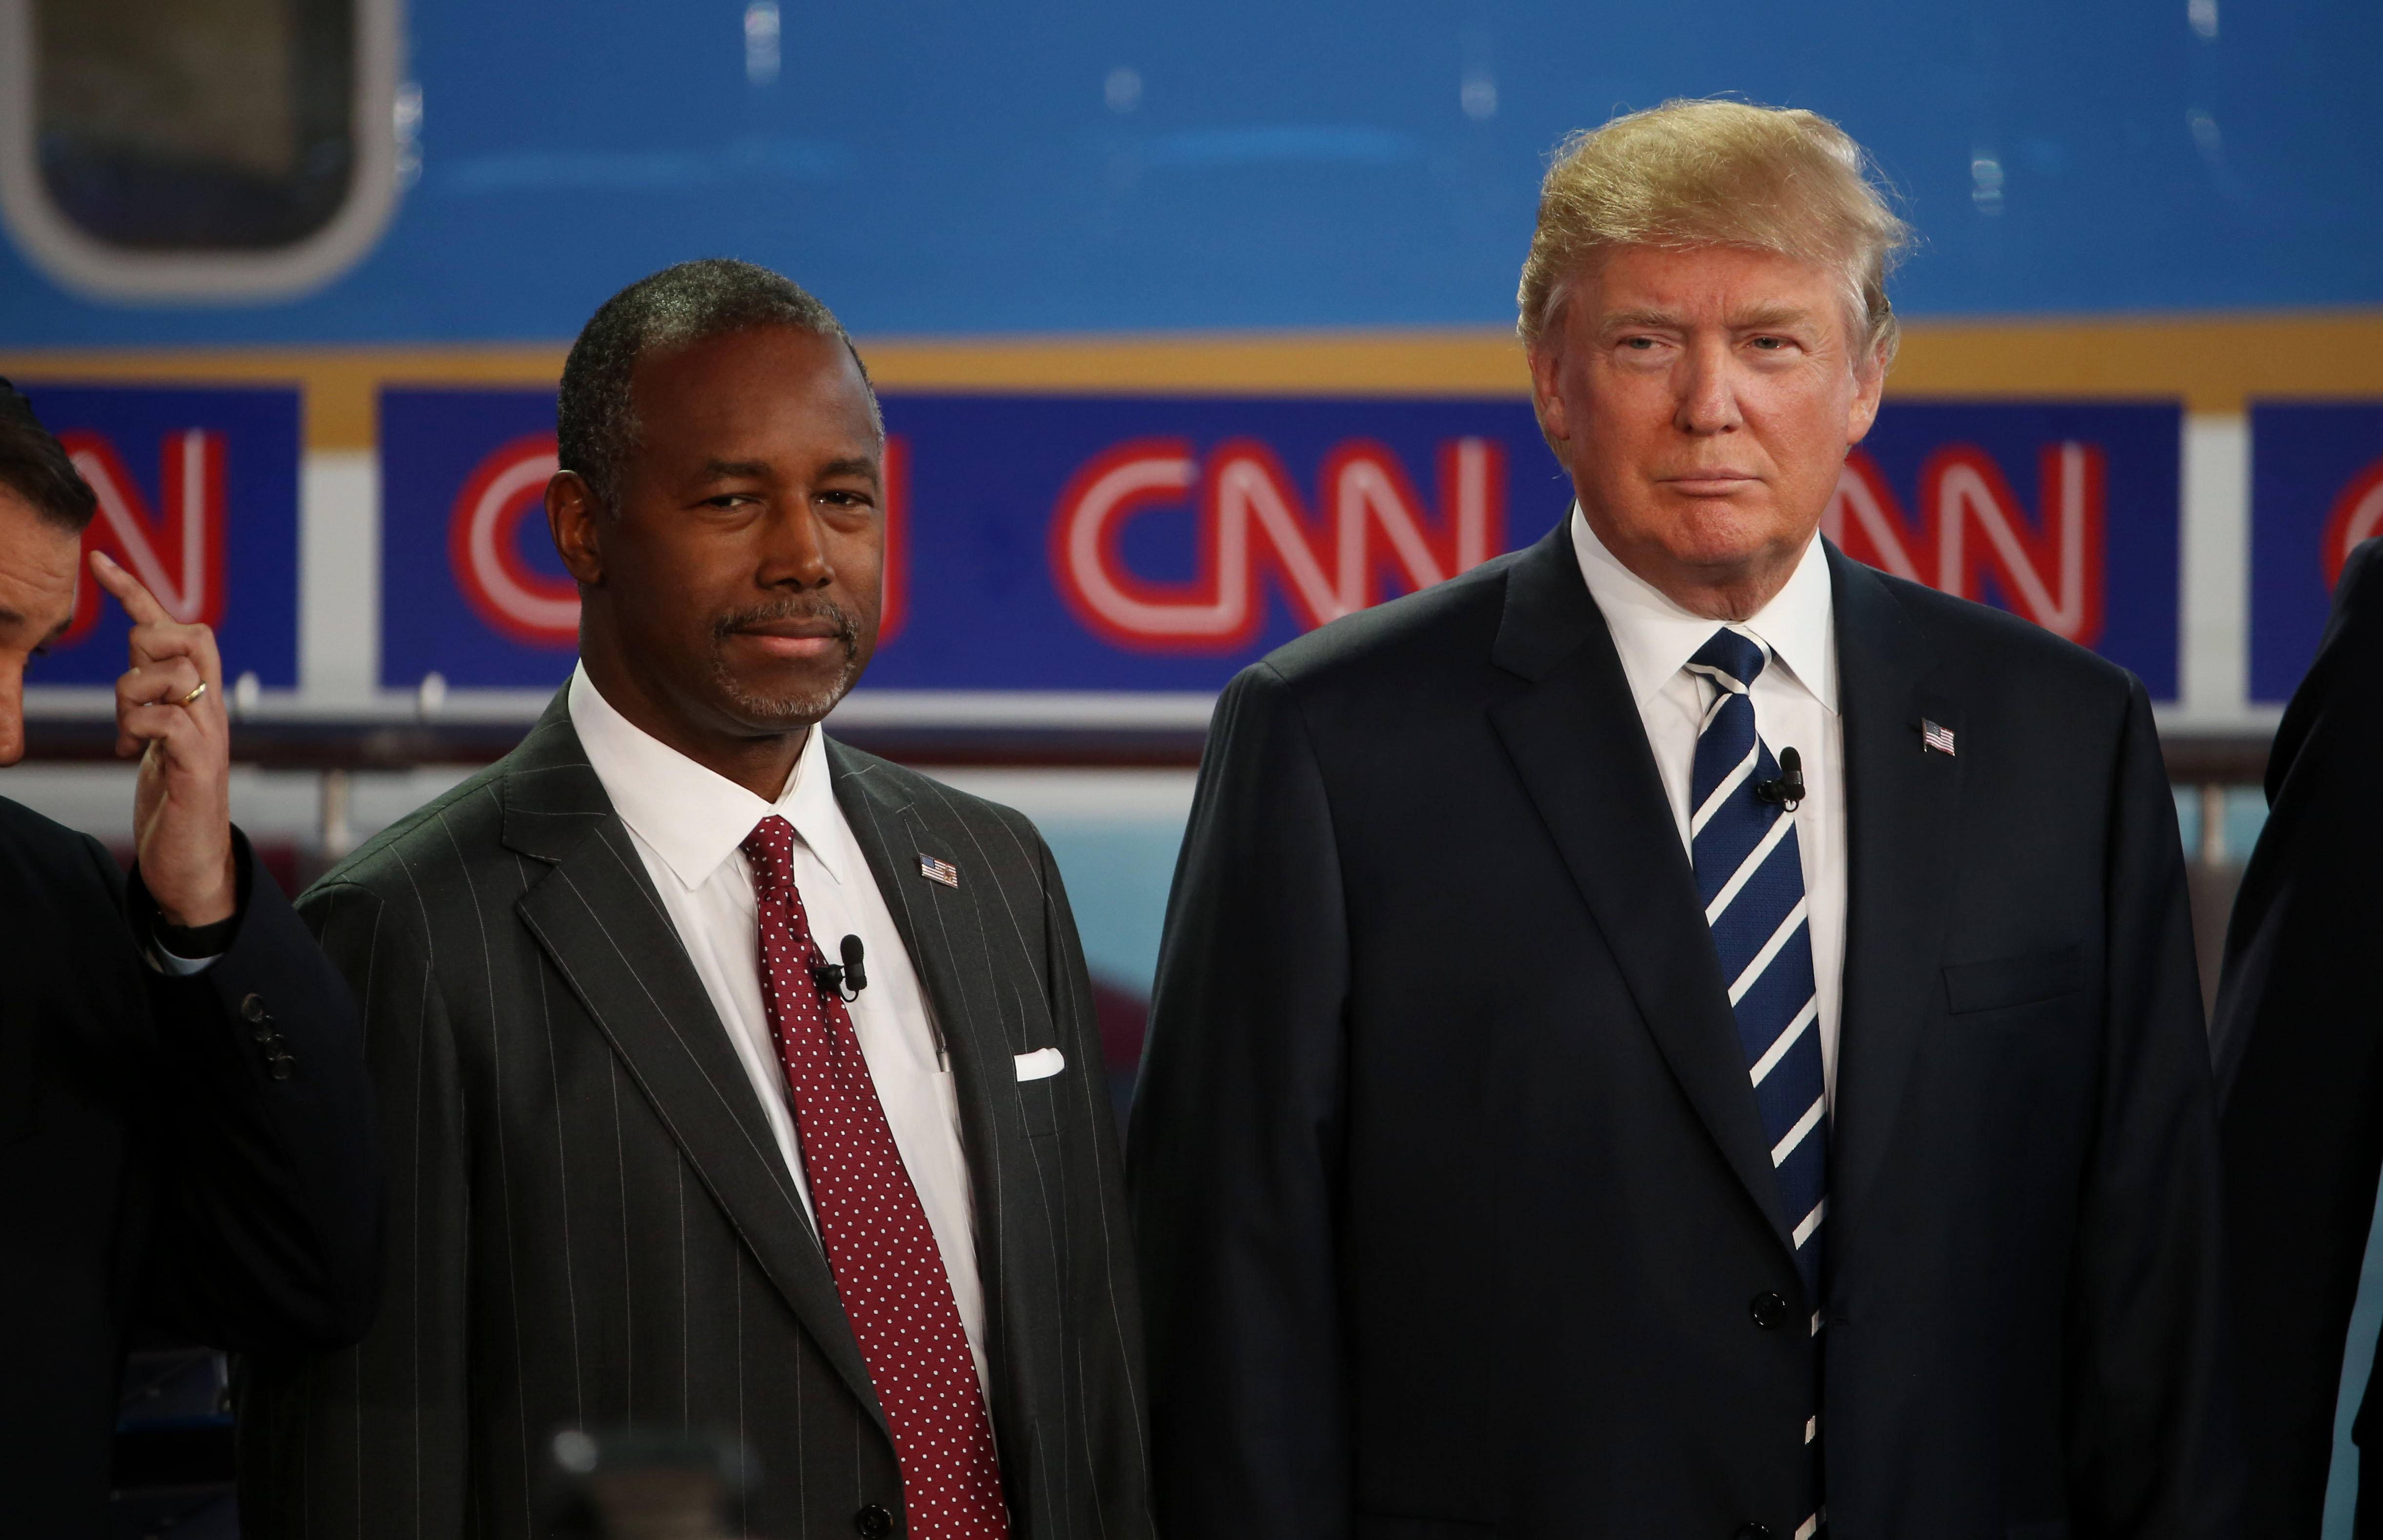 Ben Carson and Donald Trump take part in the presidential debates at the Reagan Library in Simi Valley, Calif., on Sept. 16, 2015.